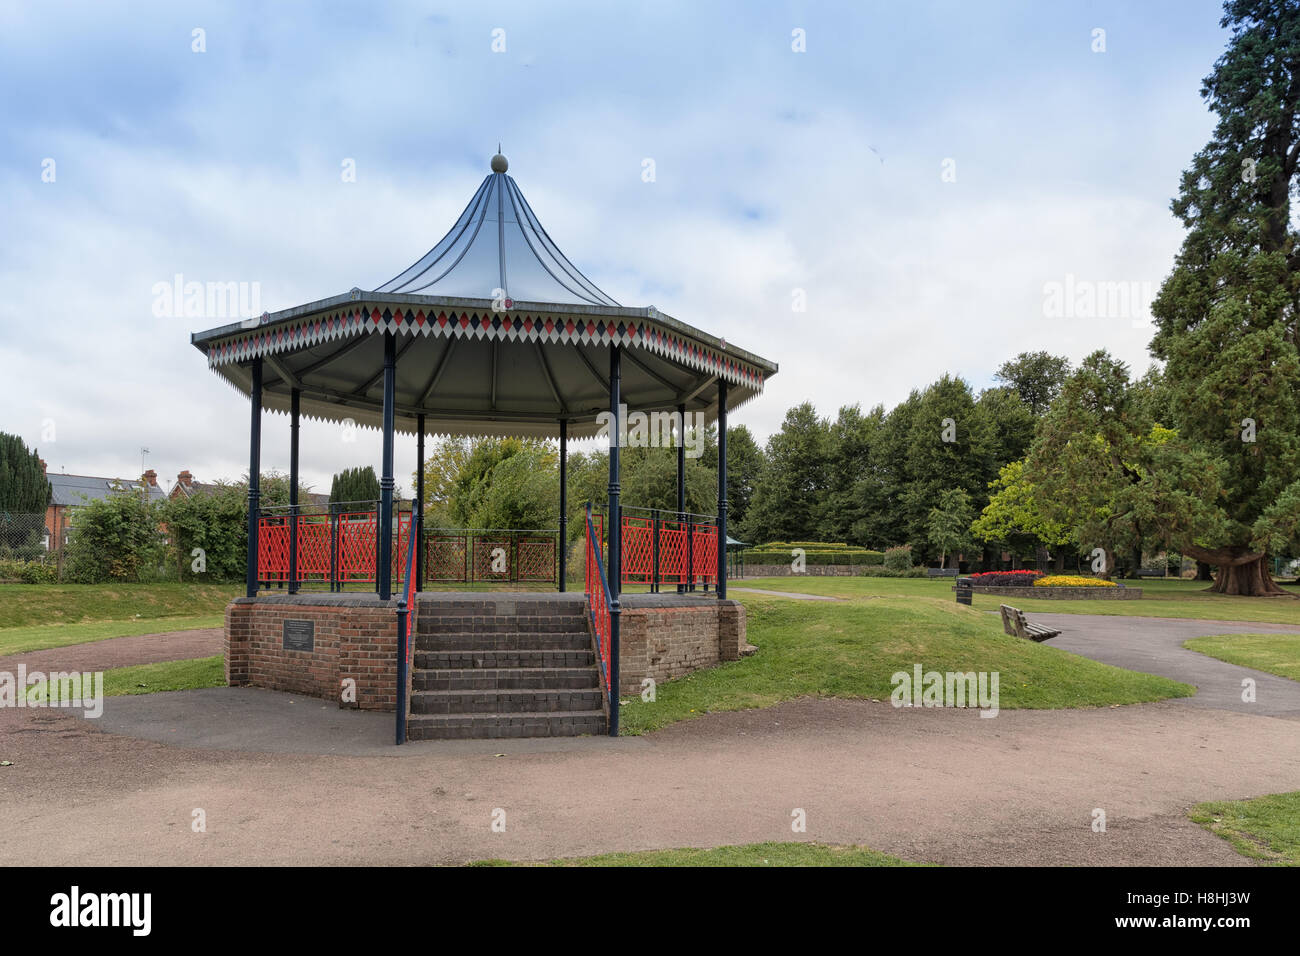 A view of the bandstand in the public gardens at Alton town park in Hampshire. Stock Photo